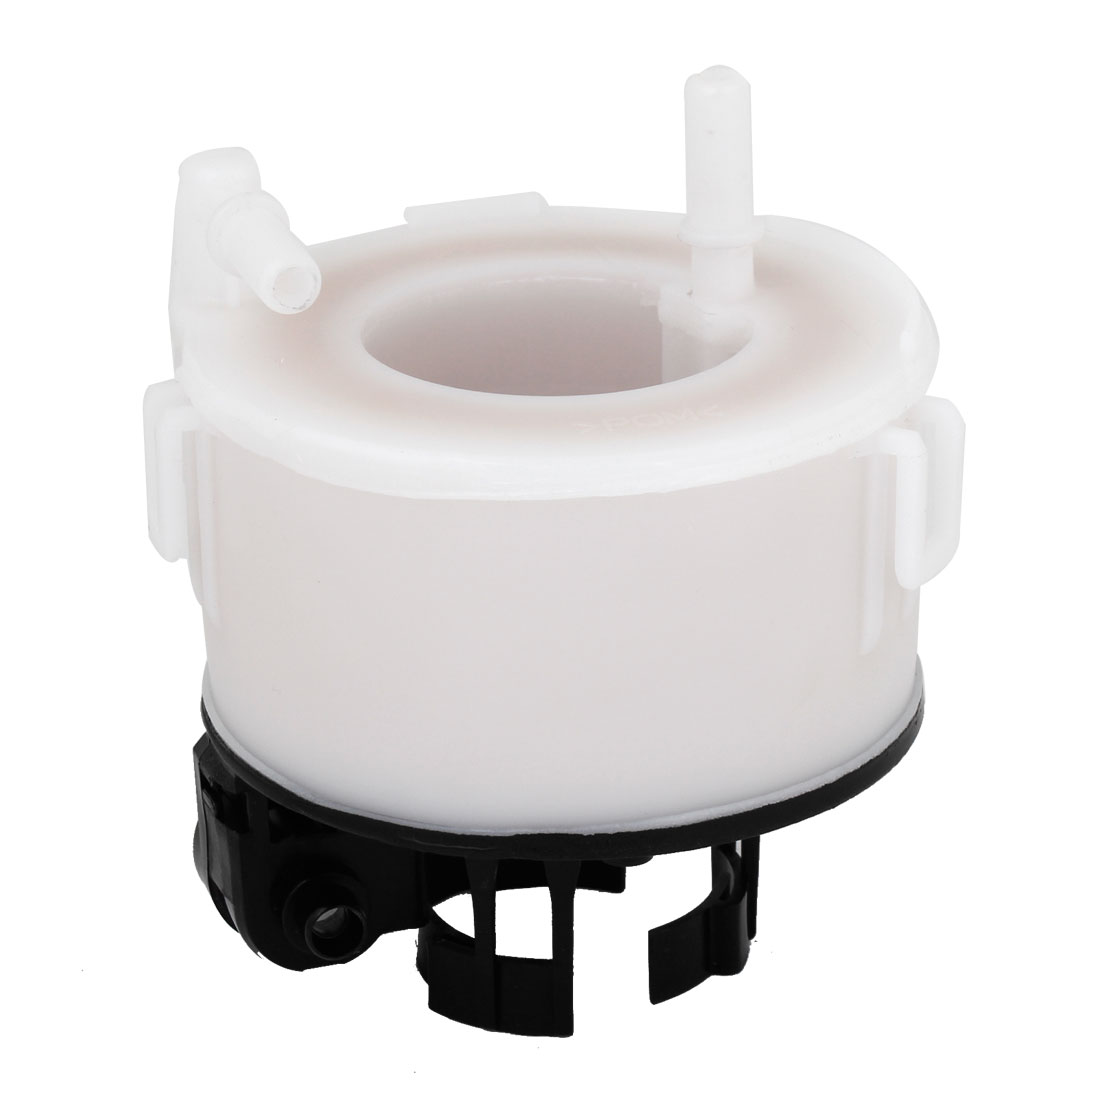 Vehicle Car White Plastic Oil Fuel Filter Assembly 31112-3Q500